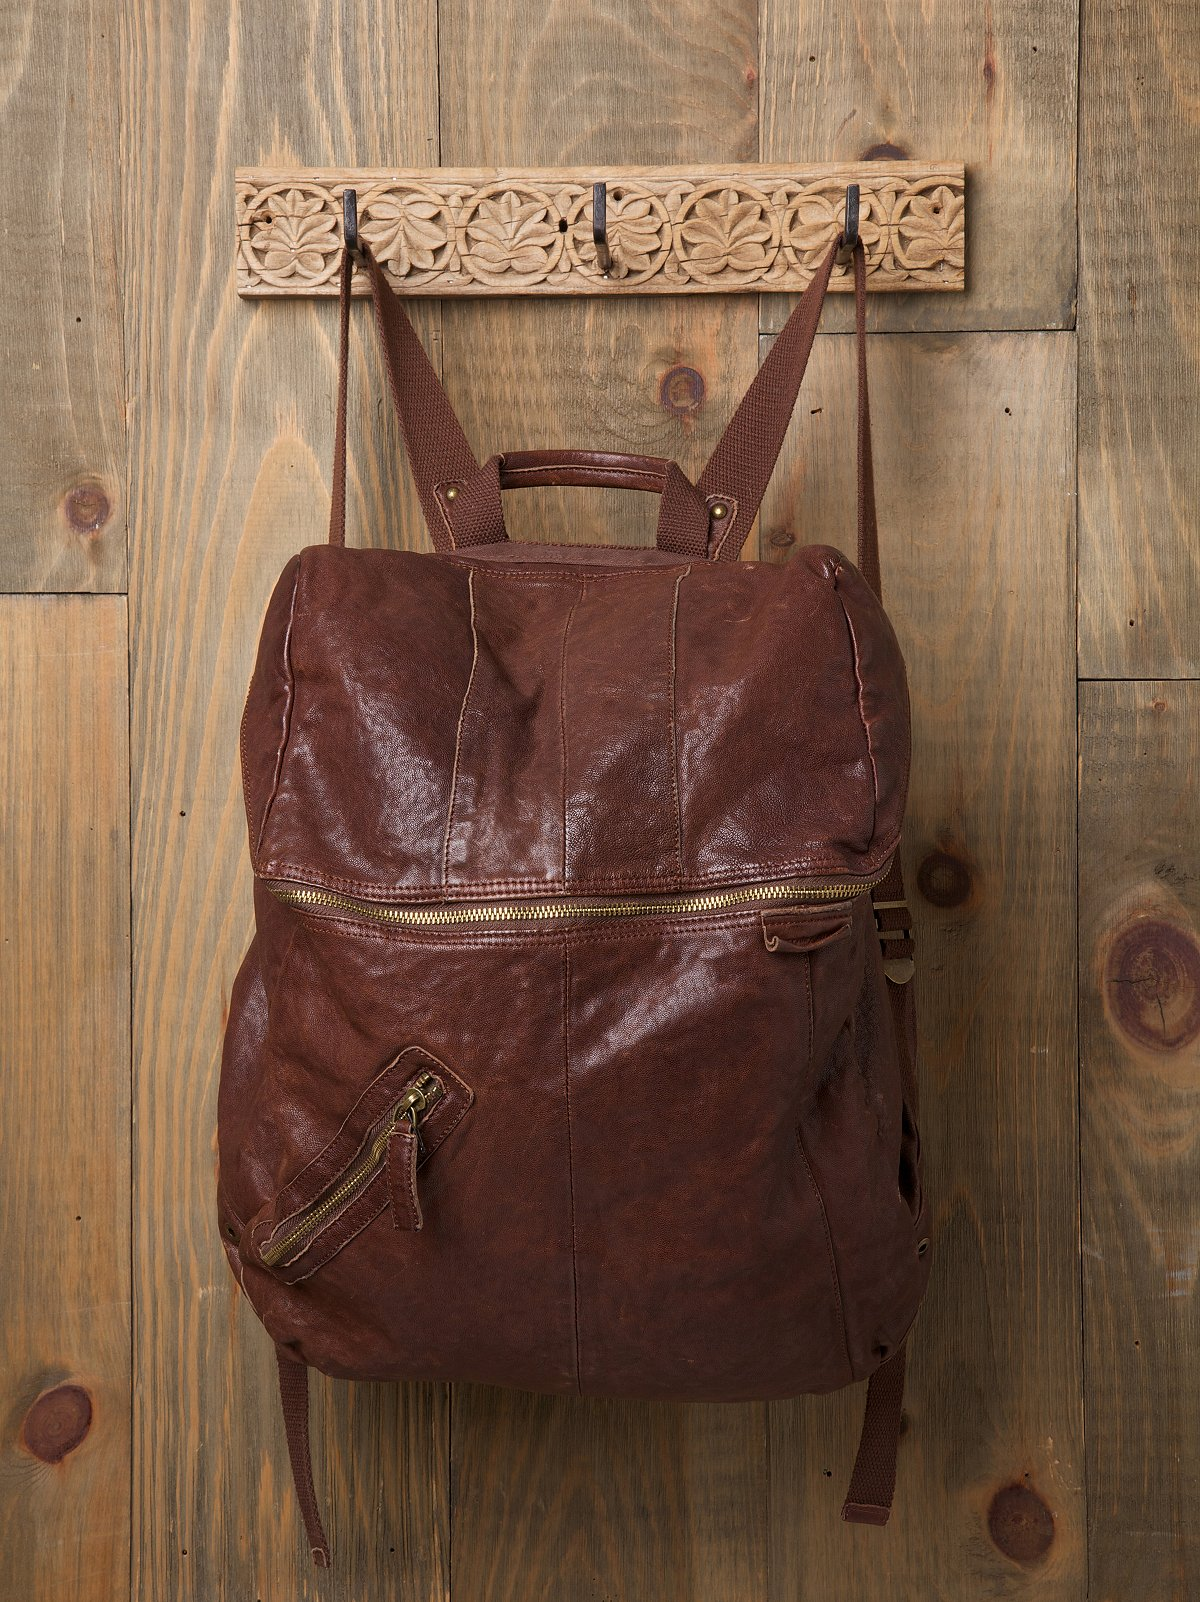 Somerset Backpack